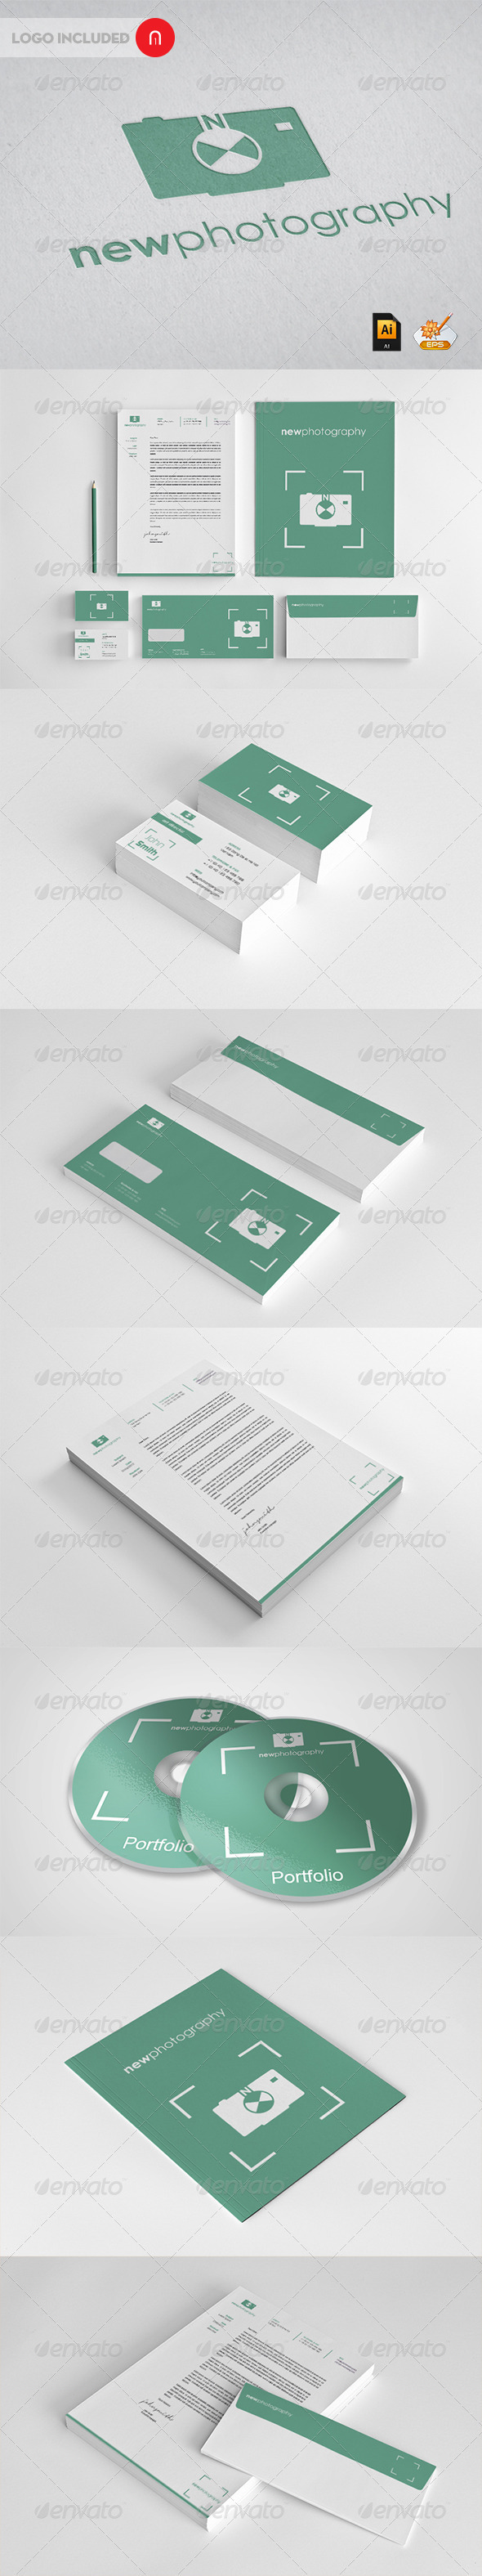 Stationary & Identity - Newphotography - Stationery Print Templates